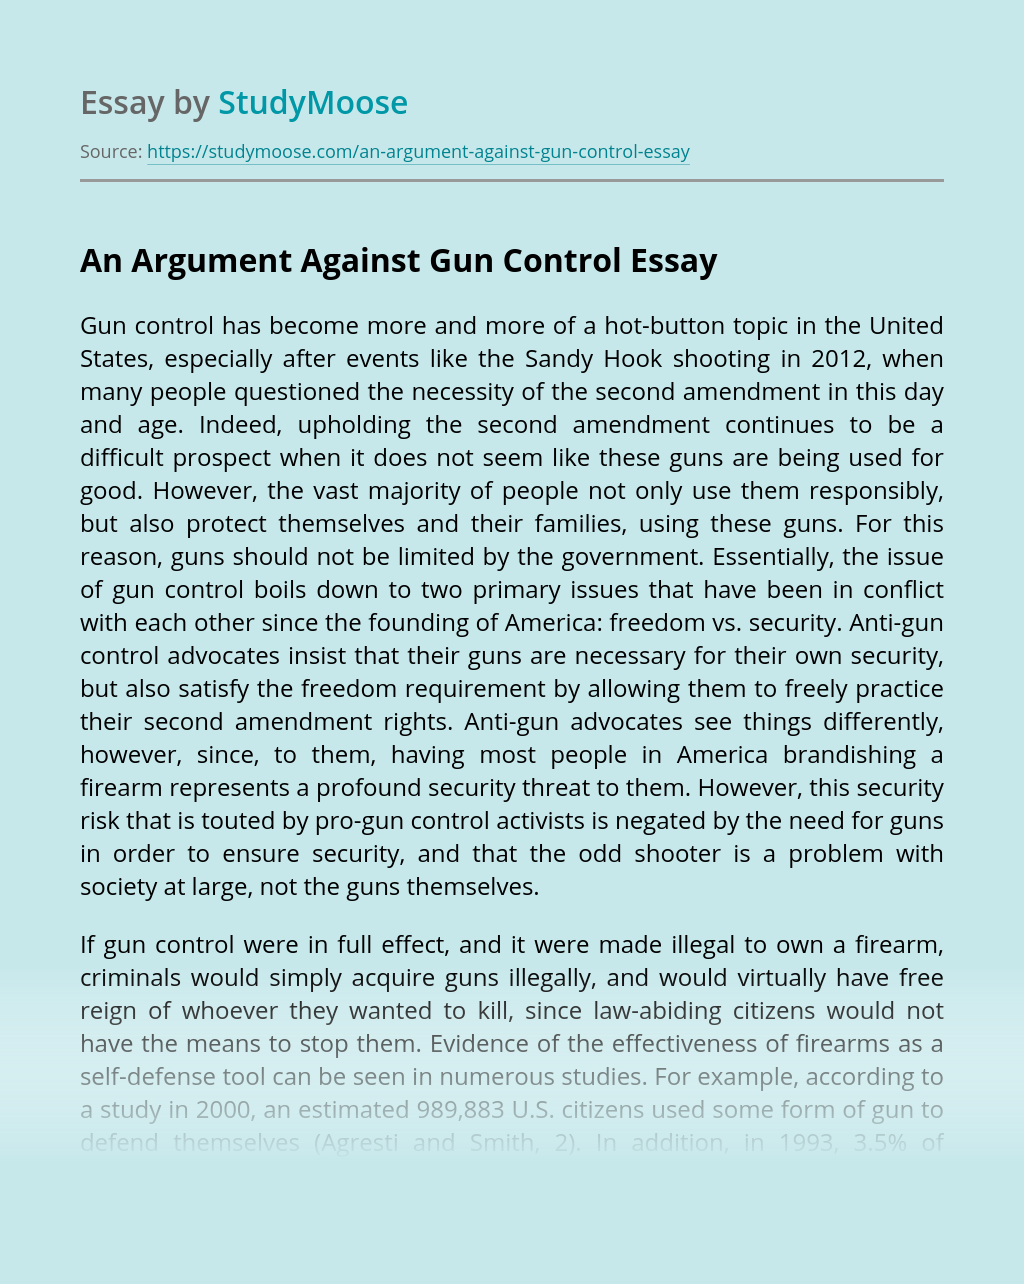 An Argument Against Gun Control